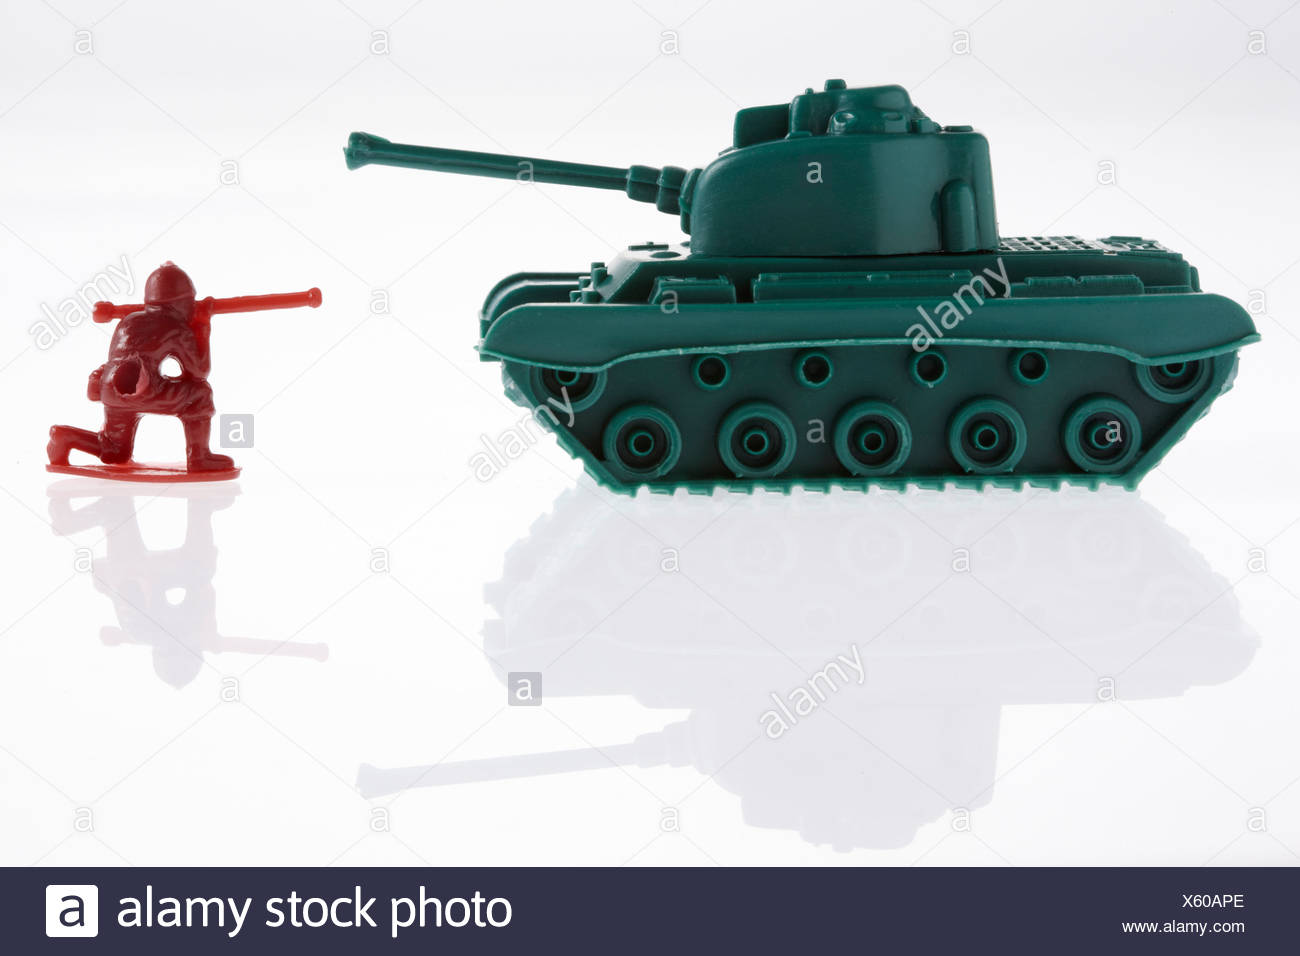 Toy army soldier and toy army tanks - Stock Image